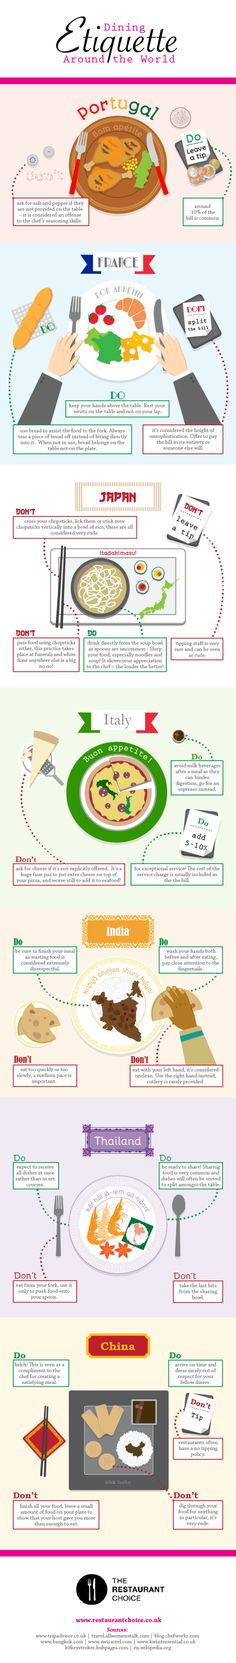 Whether you're abroad, or going out to a foreign restaurant locally, you need to be sensitive to the dining etiquette of the culture. This chart gives you a broad overview of table manners around the world.